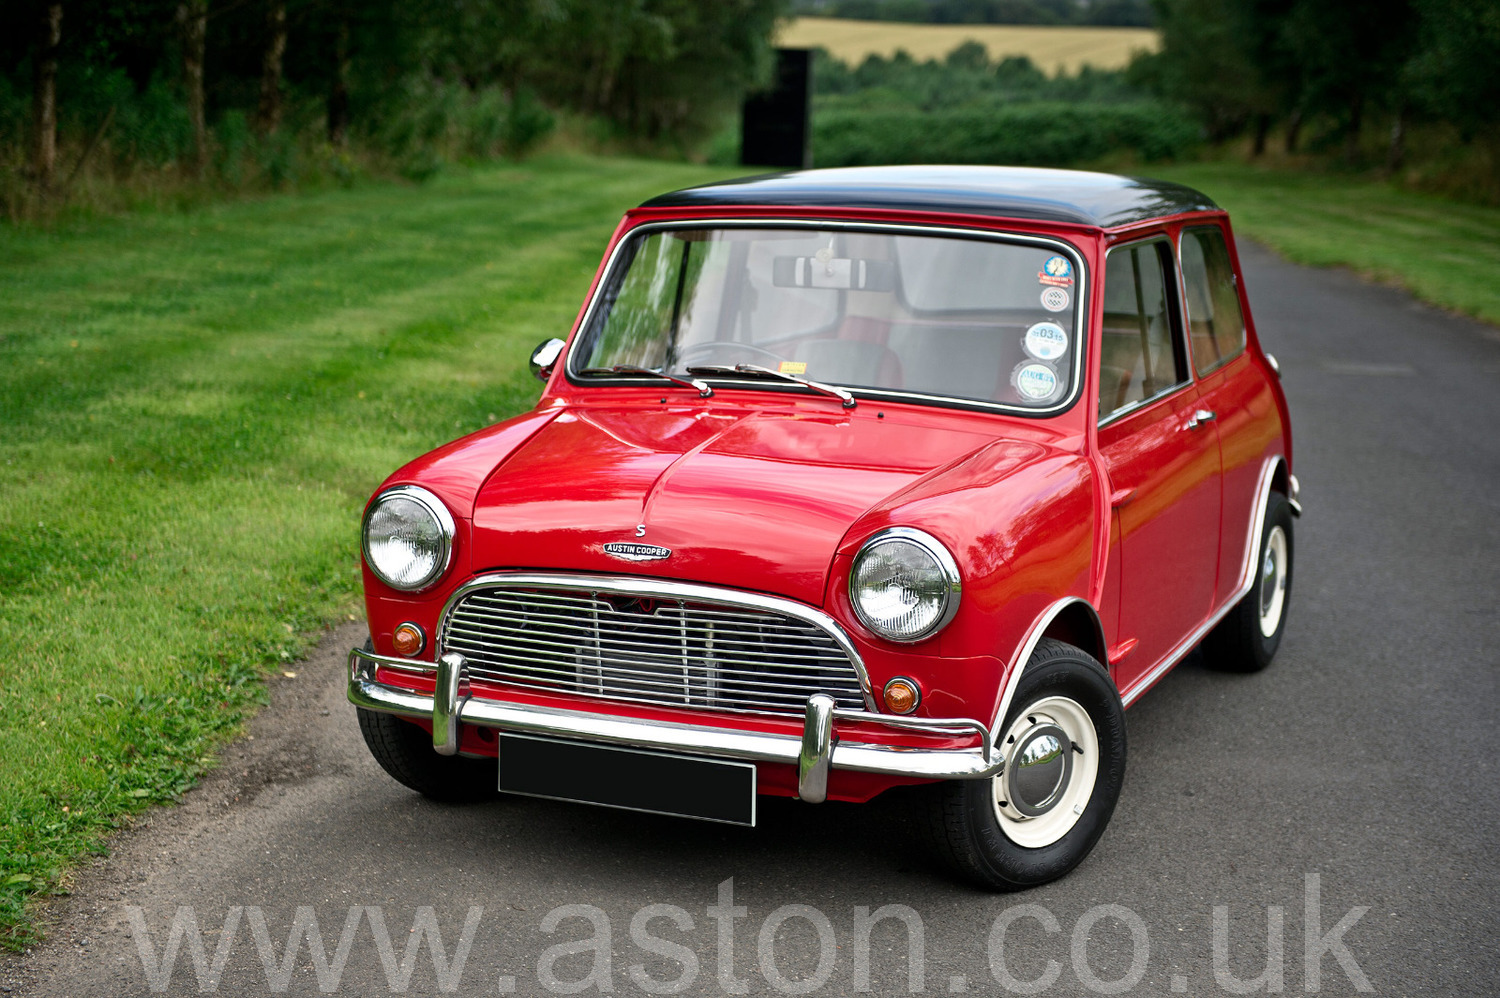 Mini Cooper Dealer >> MK1 Mini Cooper S 1967 for sale from the Aston Workshop ...